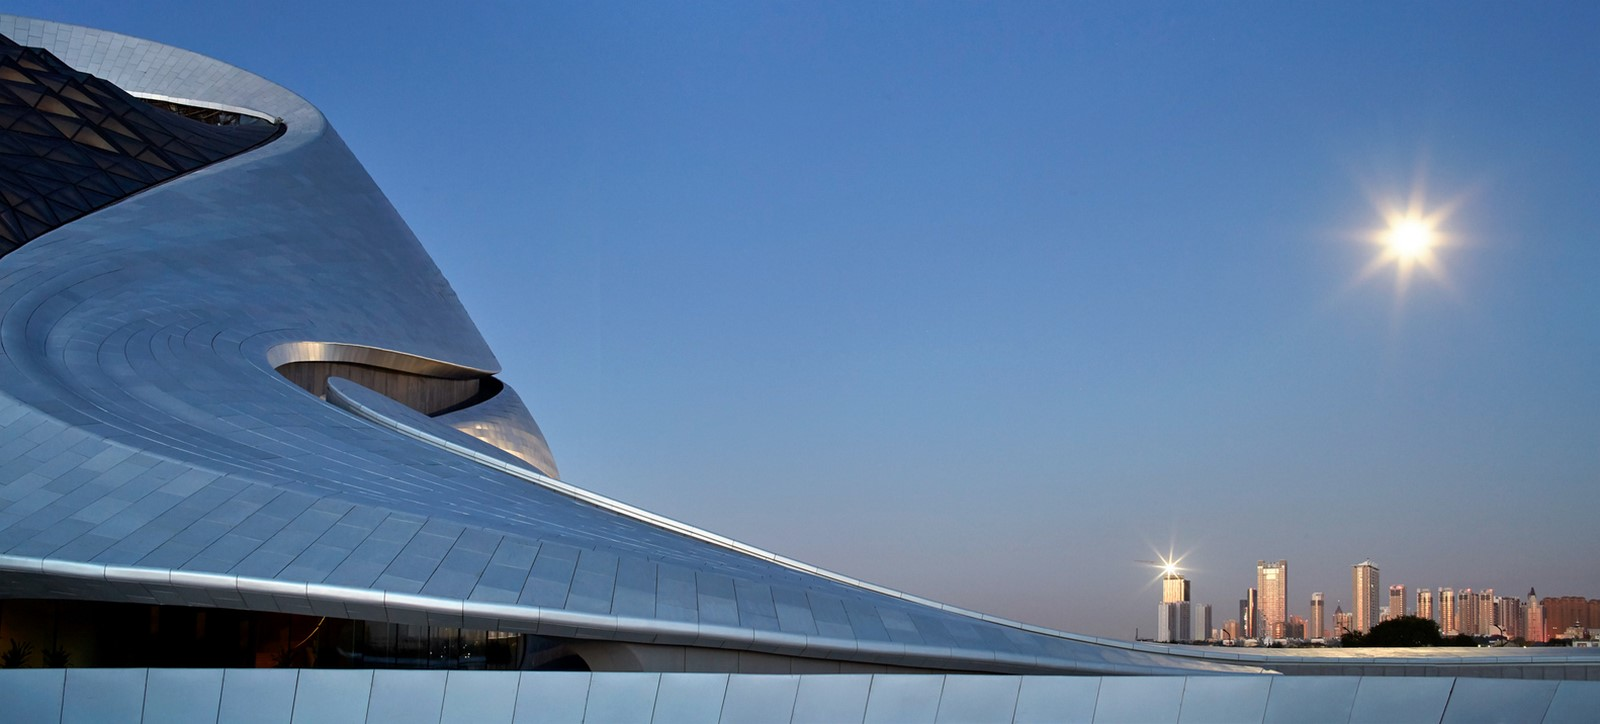 Harbin Opera House by MAD Architects: Design inspired by the surroundings - Sheet